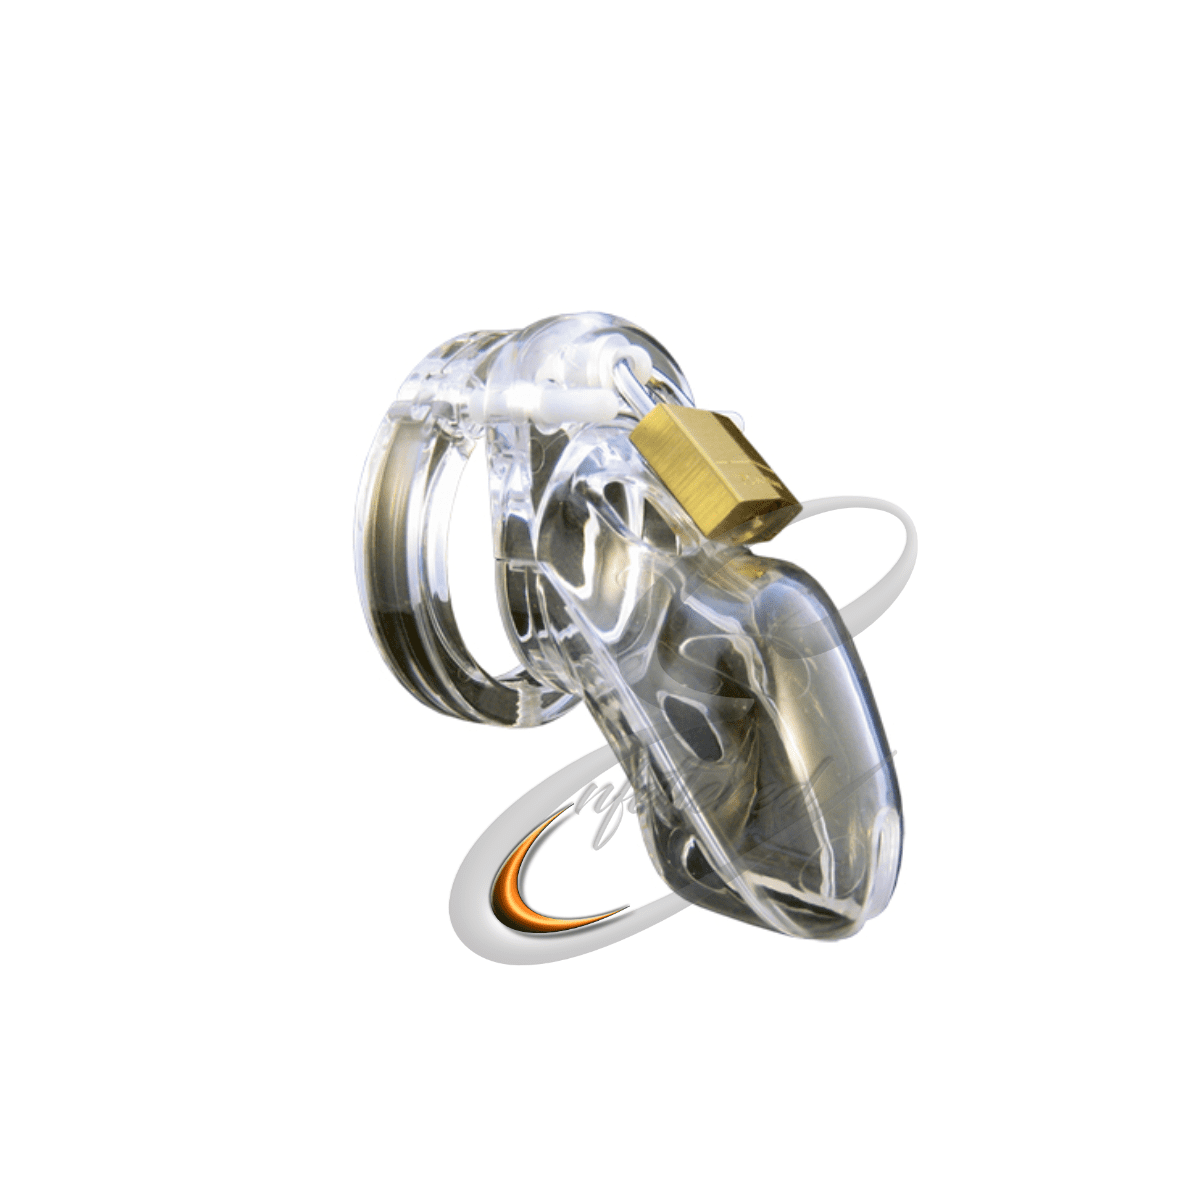 Enfettered CB-3000 Chastity